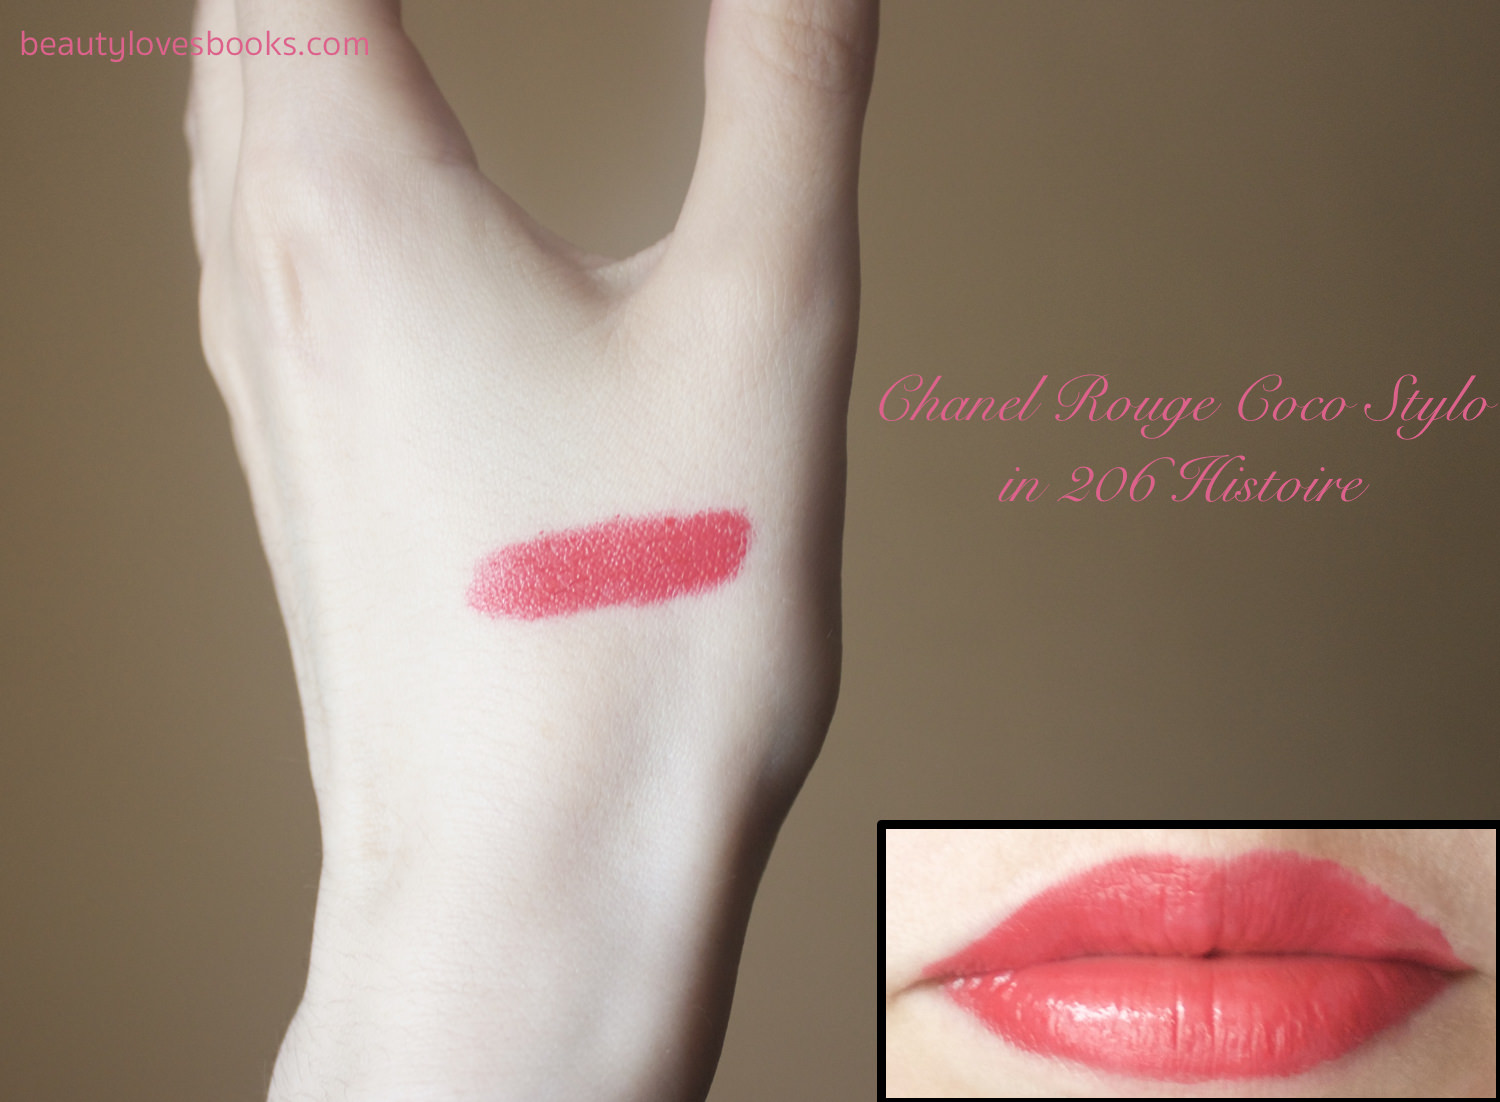 Chanel Rouge Coco Stylo complete care lip shine in the shade 206 Histoire swatch